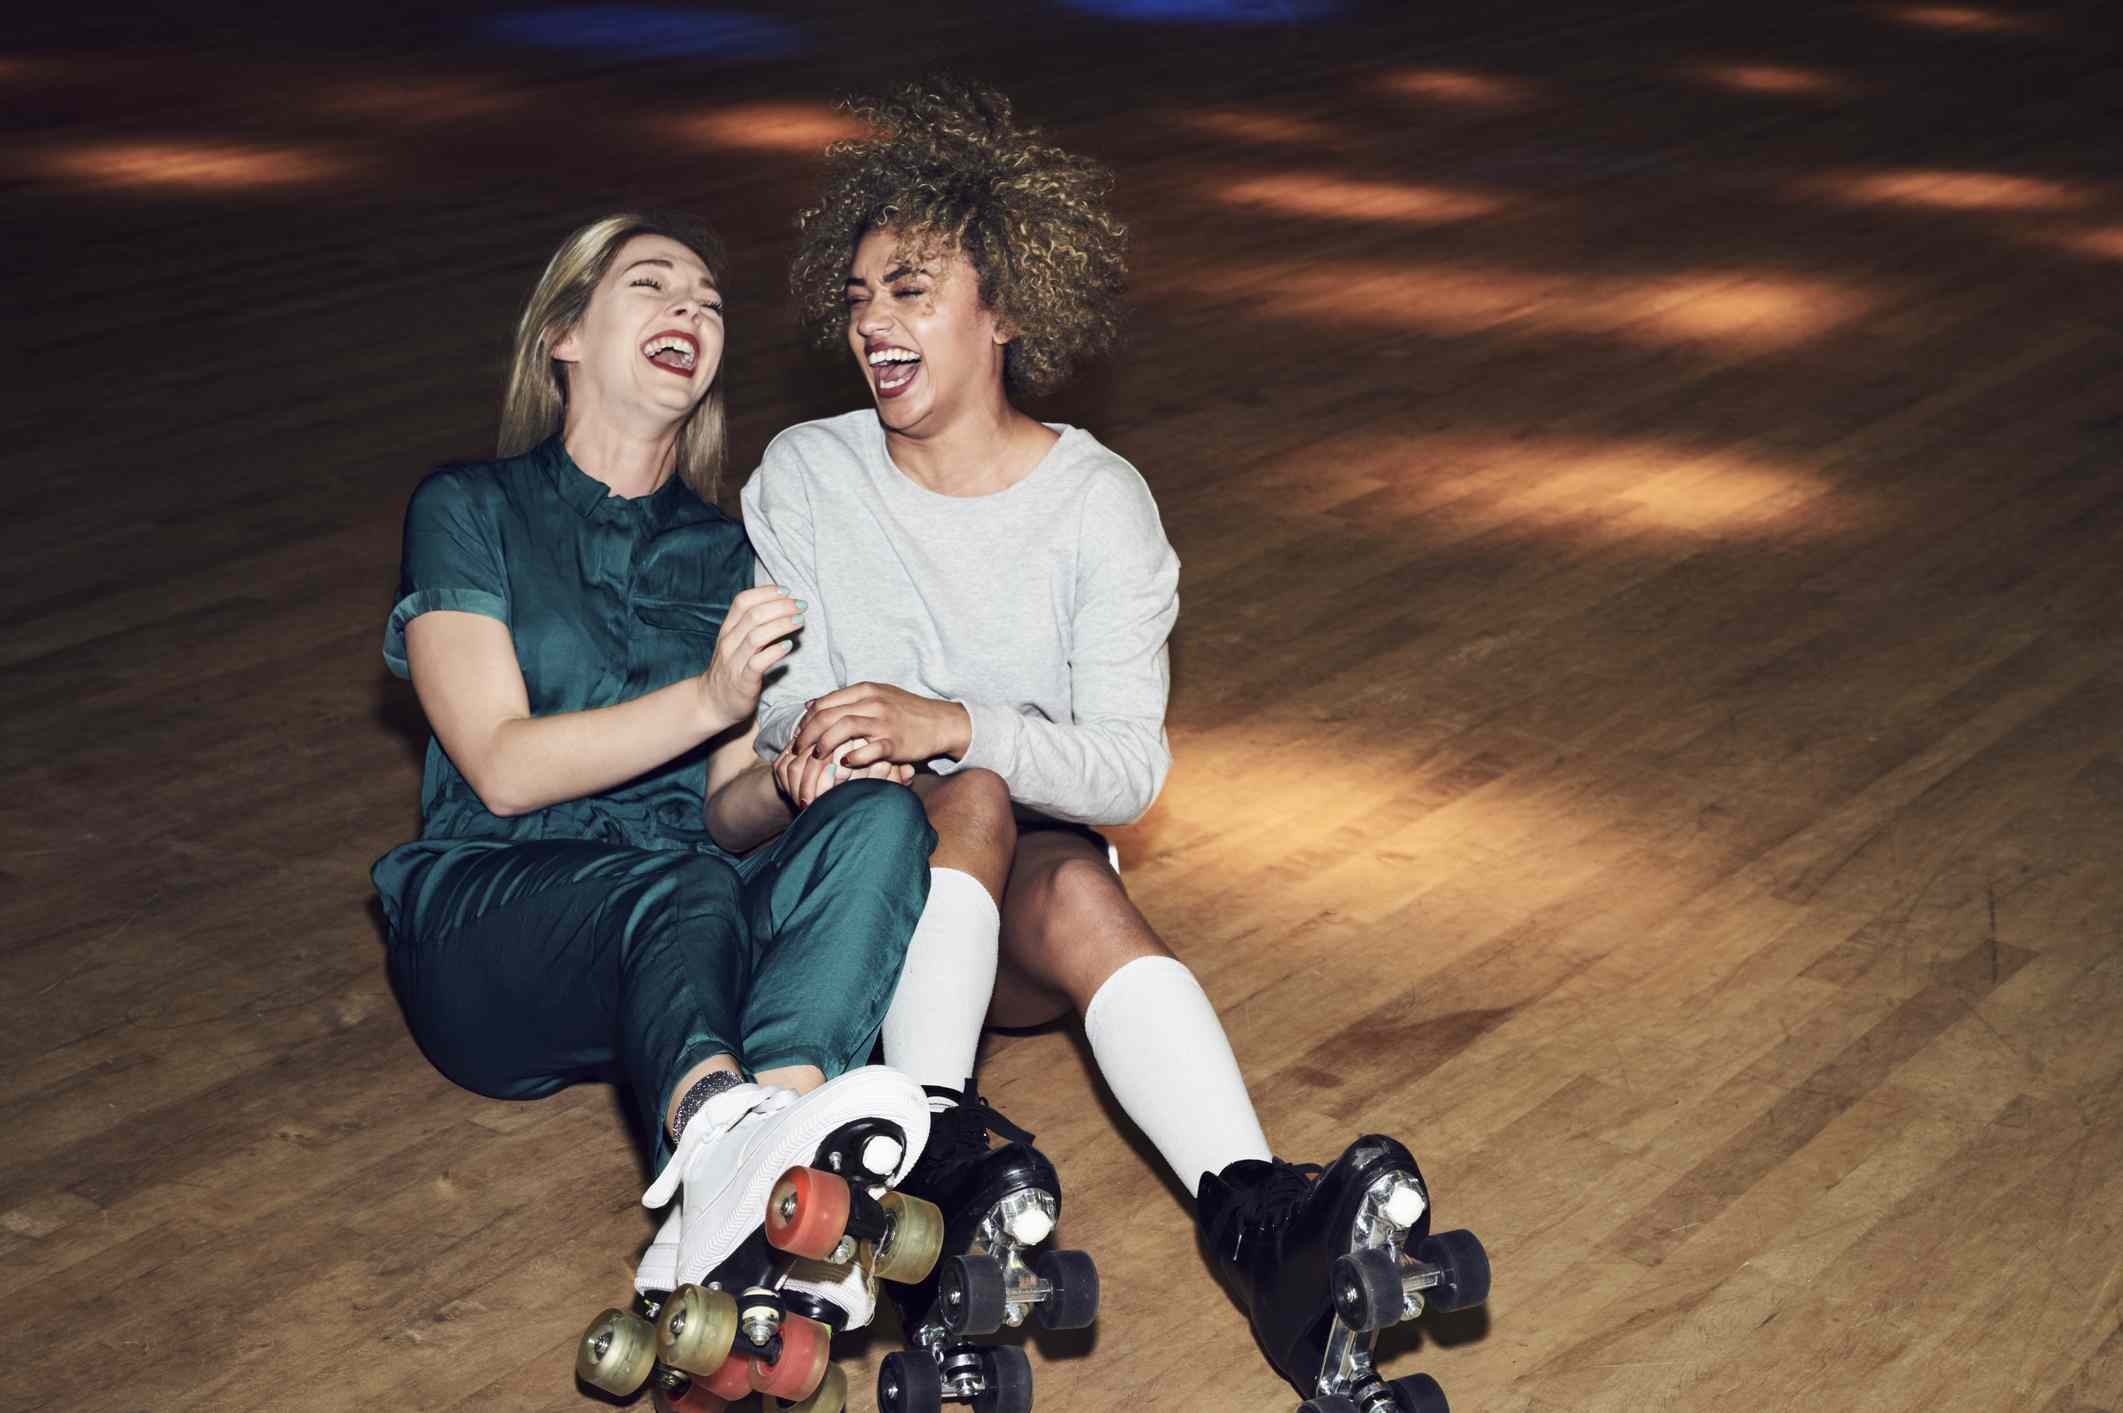 Two girls sitting on the floor of a roller skating rink laughing